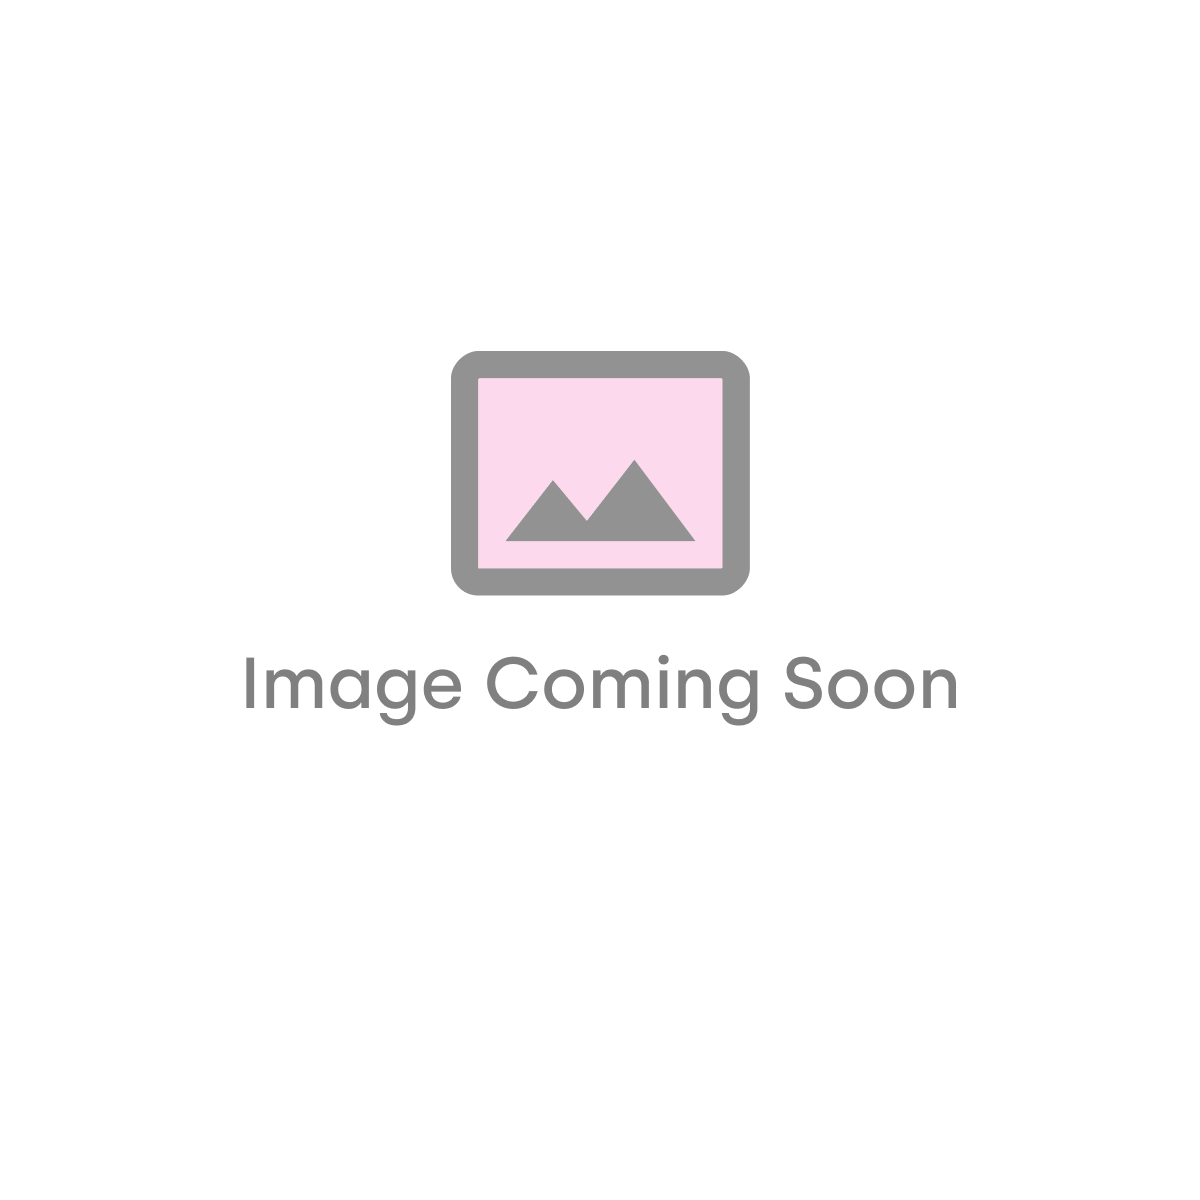 Josef Martin Vario 750mm Wall Hung Vanity Unit - Basalt with Copper Face (17359)